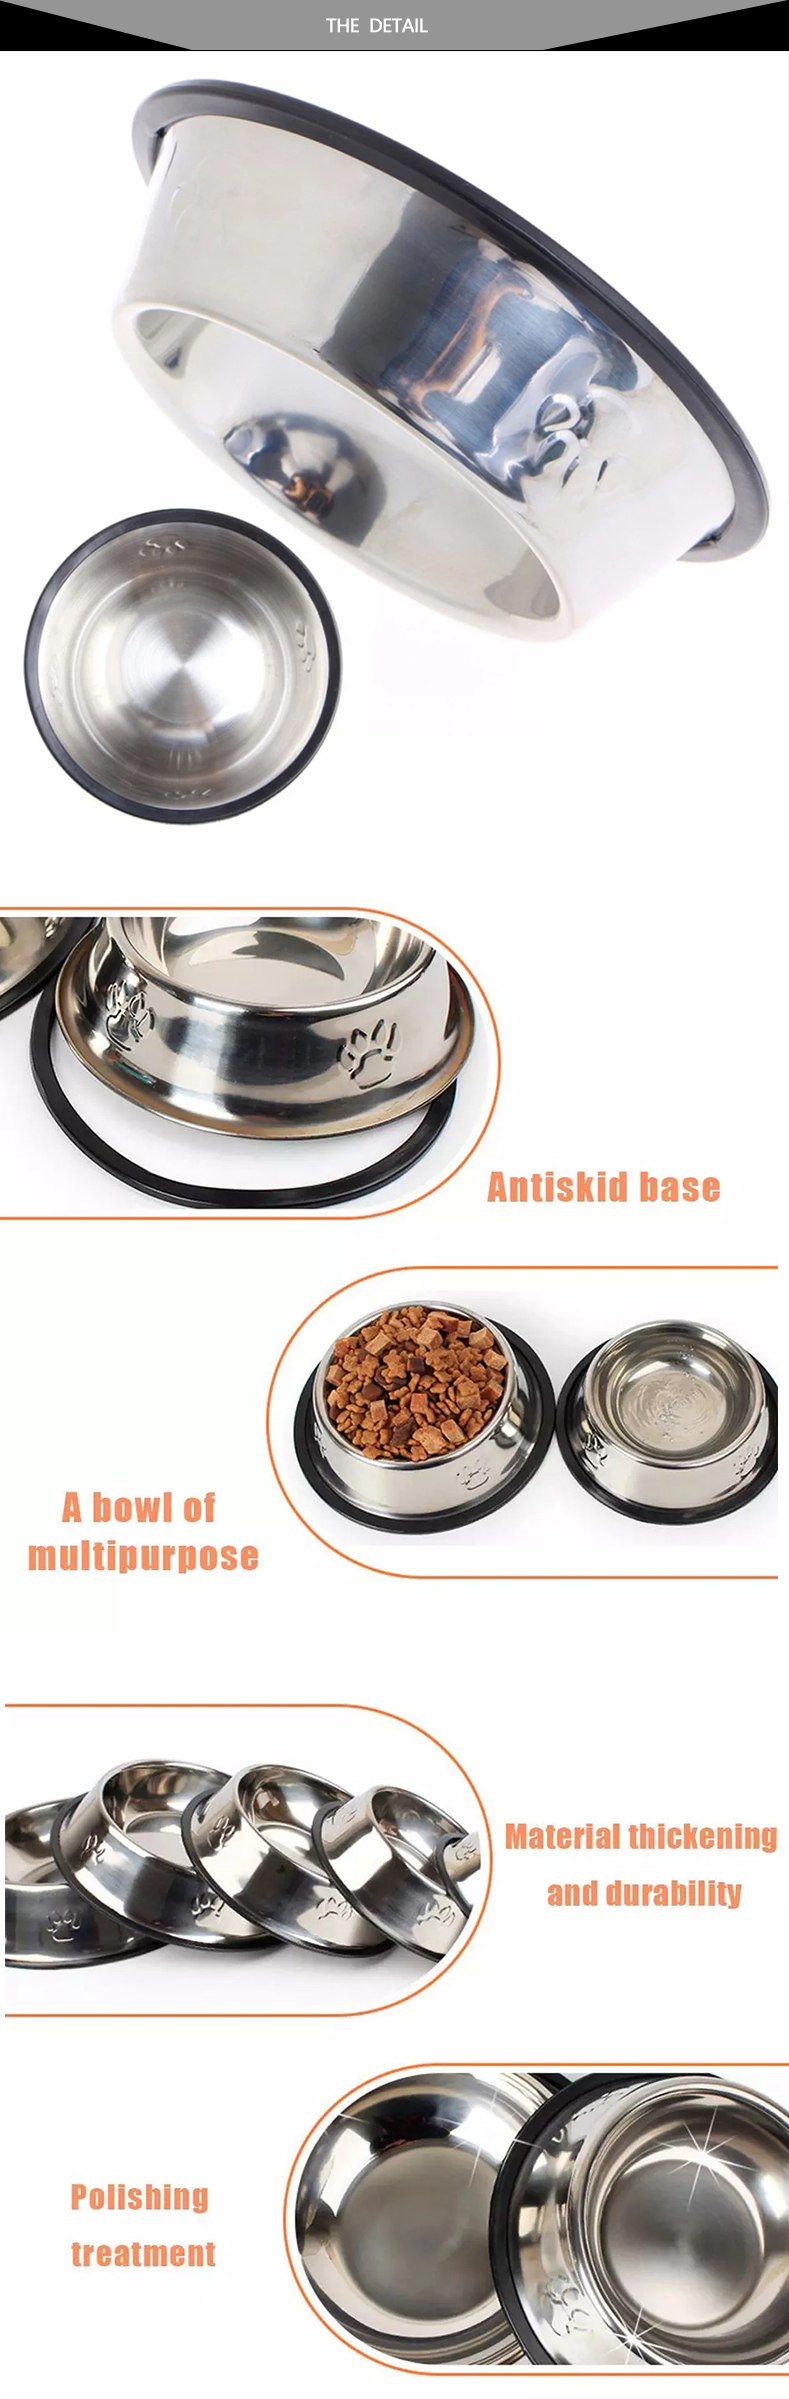 SUPREPET Stainless Steel Non-slip Feeding Bowl For Pets Anti-fall And Anti-bite Dog Bowl And Cat Anti-fall  Feeding Bowl 10